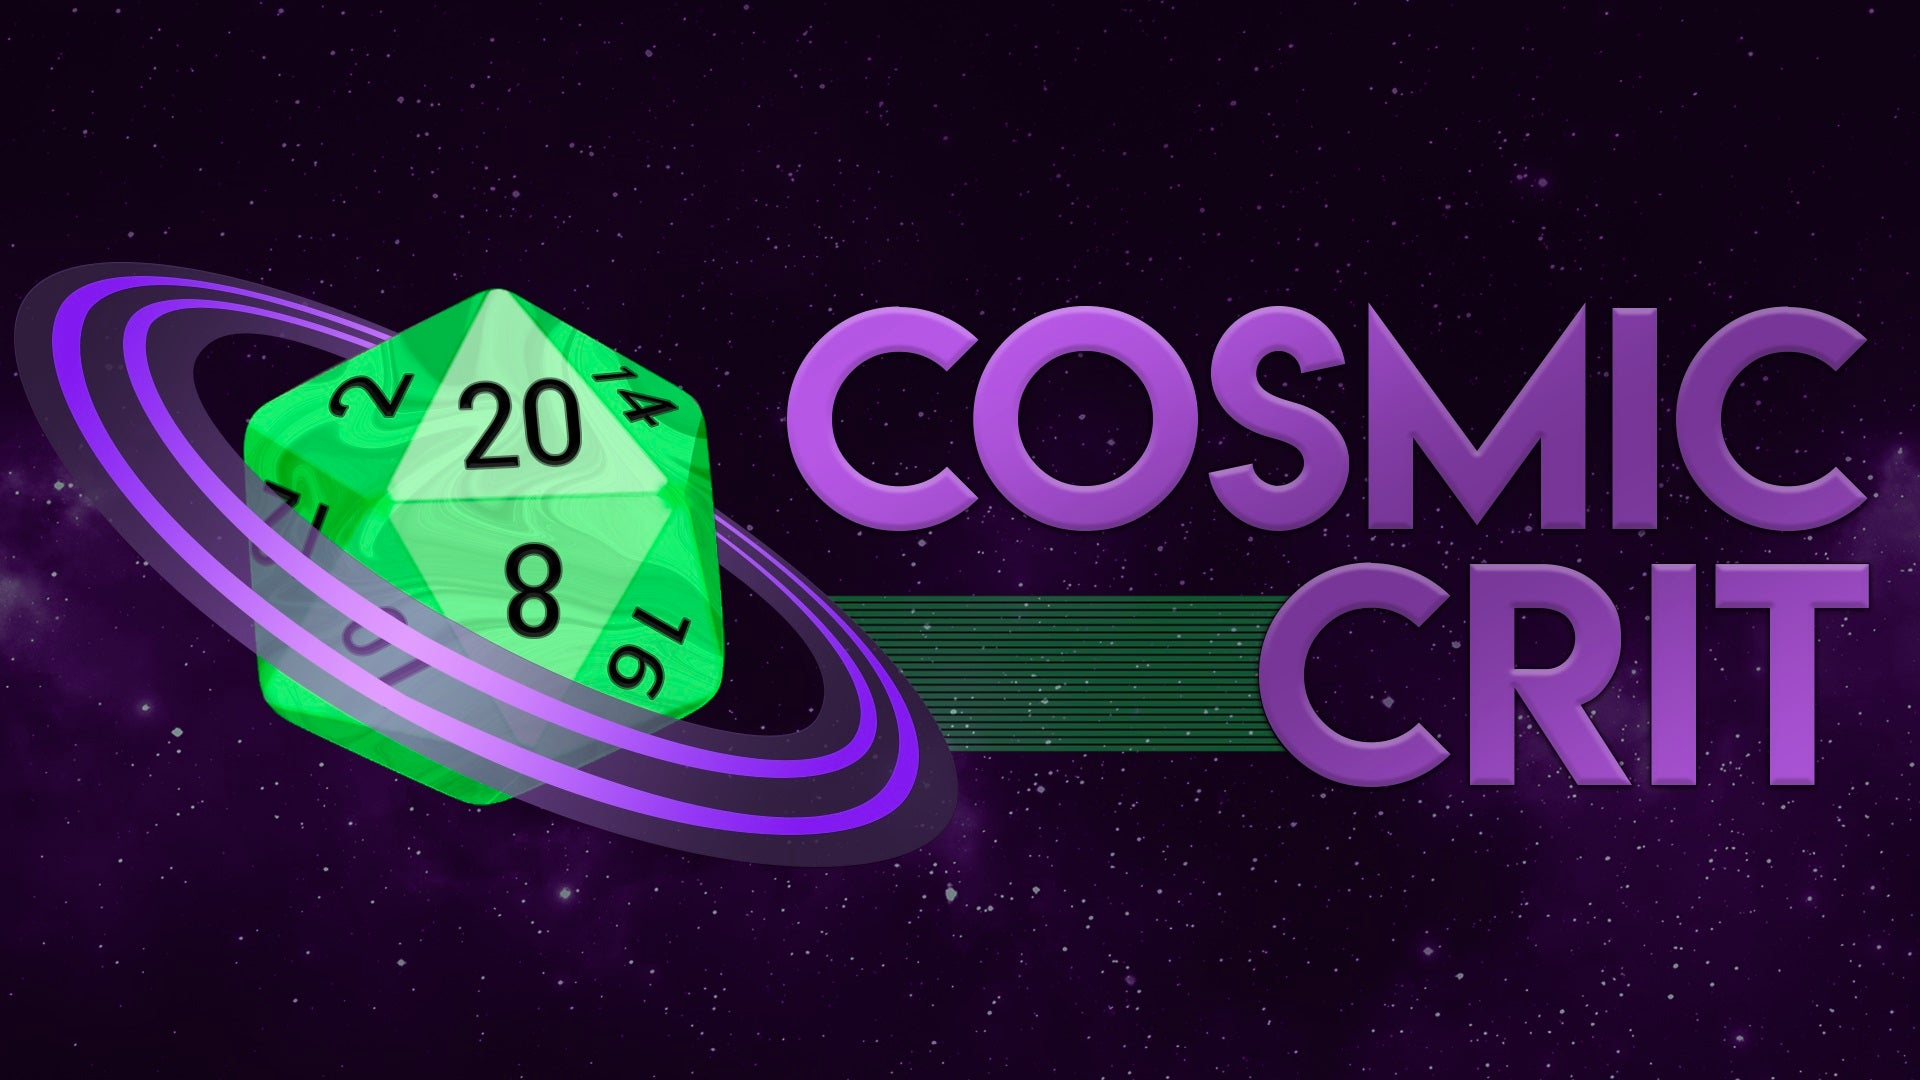 Cosmic Crit banner: A green D-20 dice with purple planet rings floating in space next to text that says Cosmic Crit